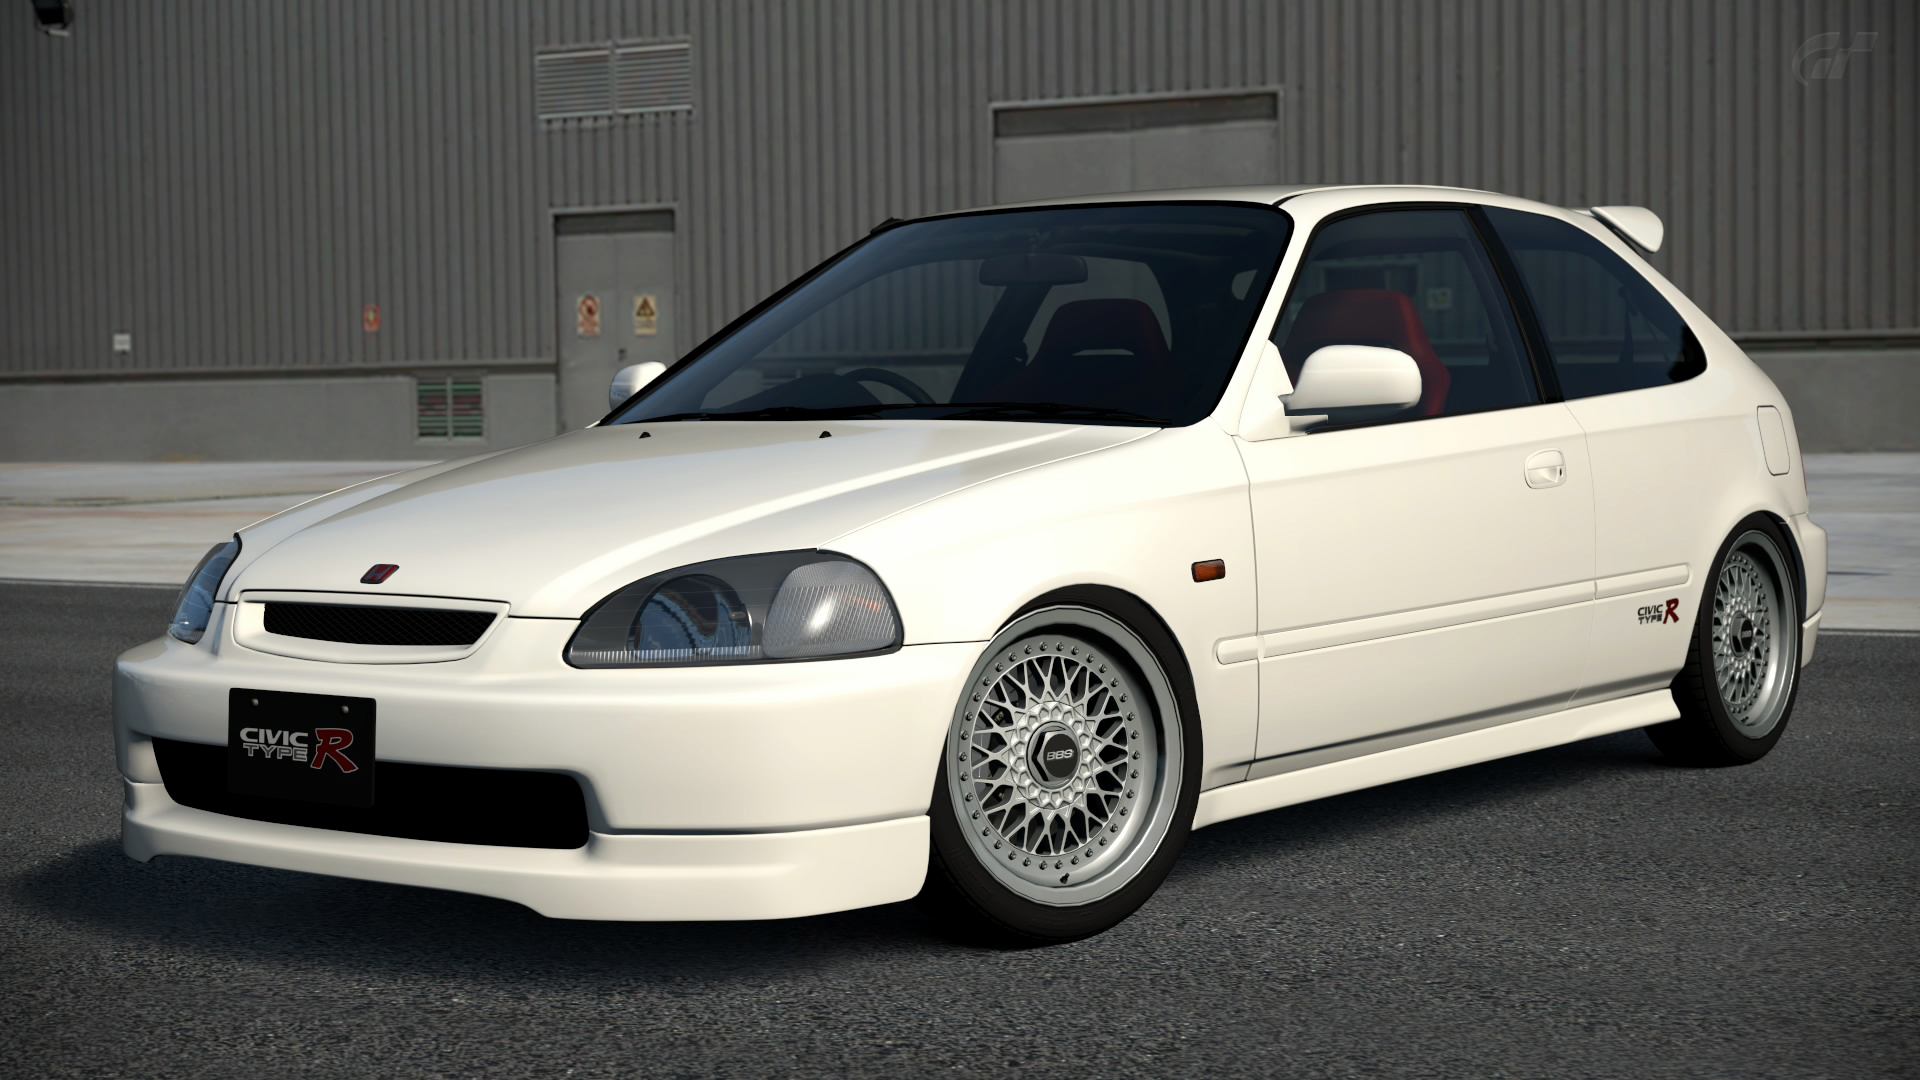 Honda Civic Type-R (Gran Turismo 6) by Vertualissimo on DeviantArt